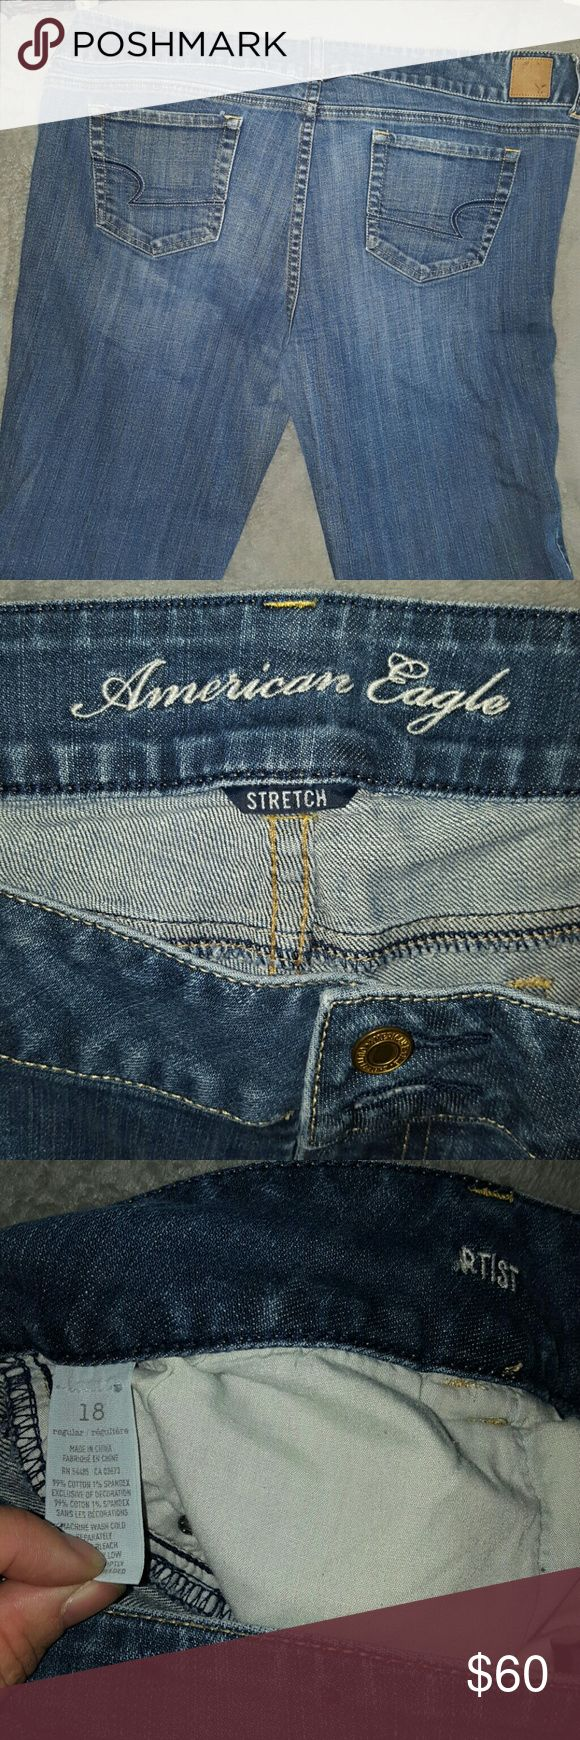 1 HR SALE ARTIST Stretch Jeans American Eagle NWOT ARTIST Stretch Jeans ~ American Eagle New w/o Tags ~ Size 18 regular. Amazing style of jeans in a hard to find size. Perfect for casual or dressy wear. I ship dsily. (#A2 location) American Eagle Outfitters Jeans